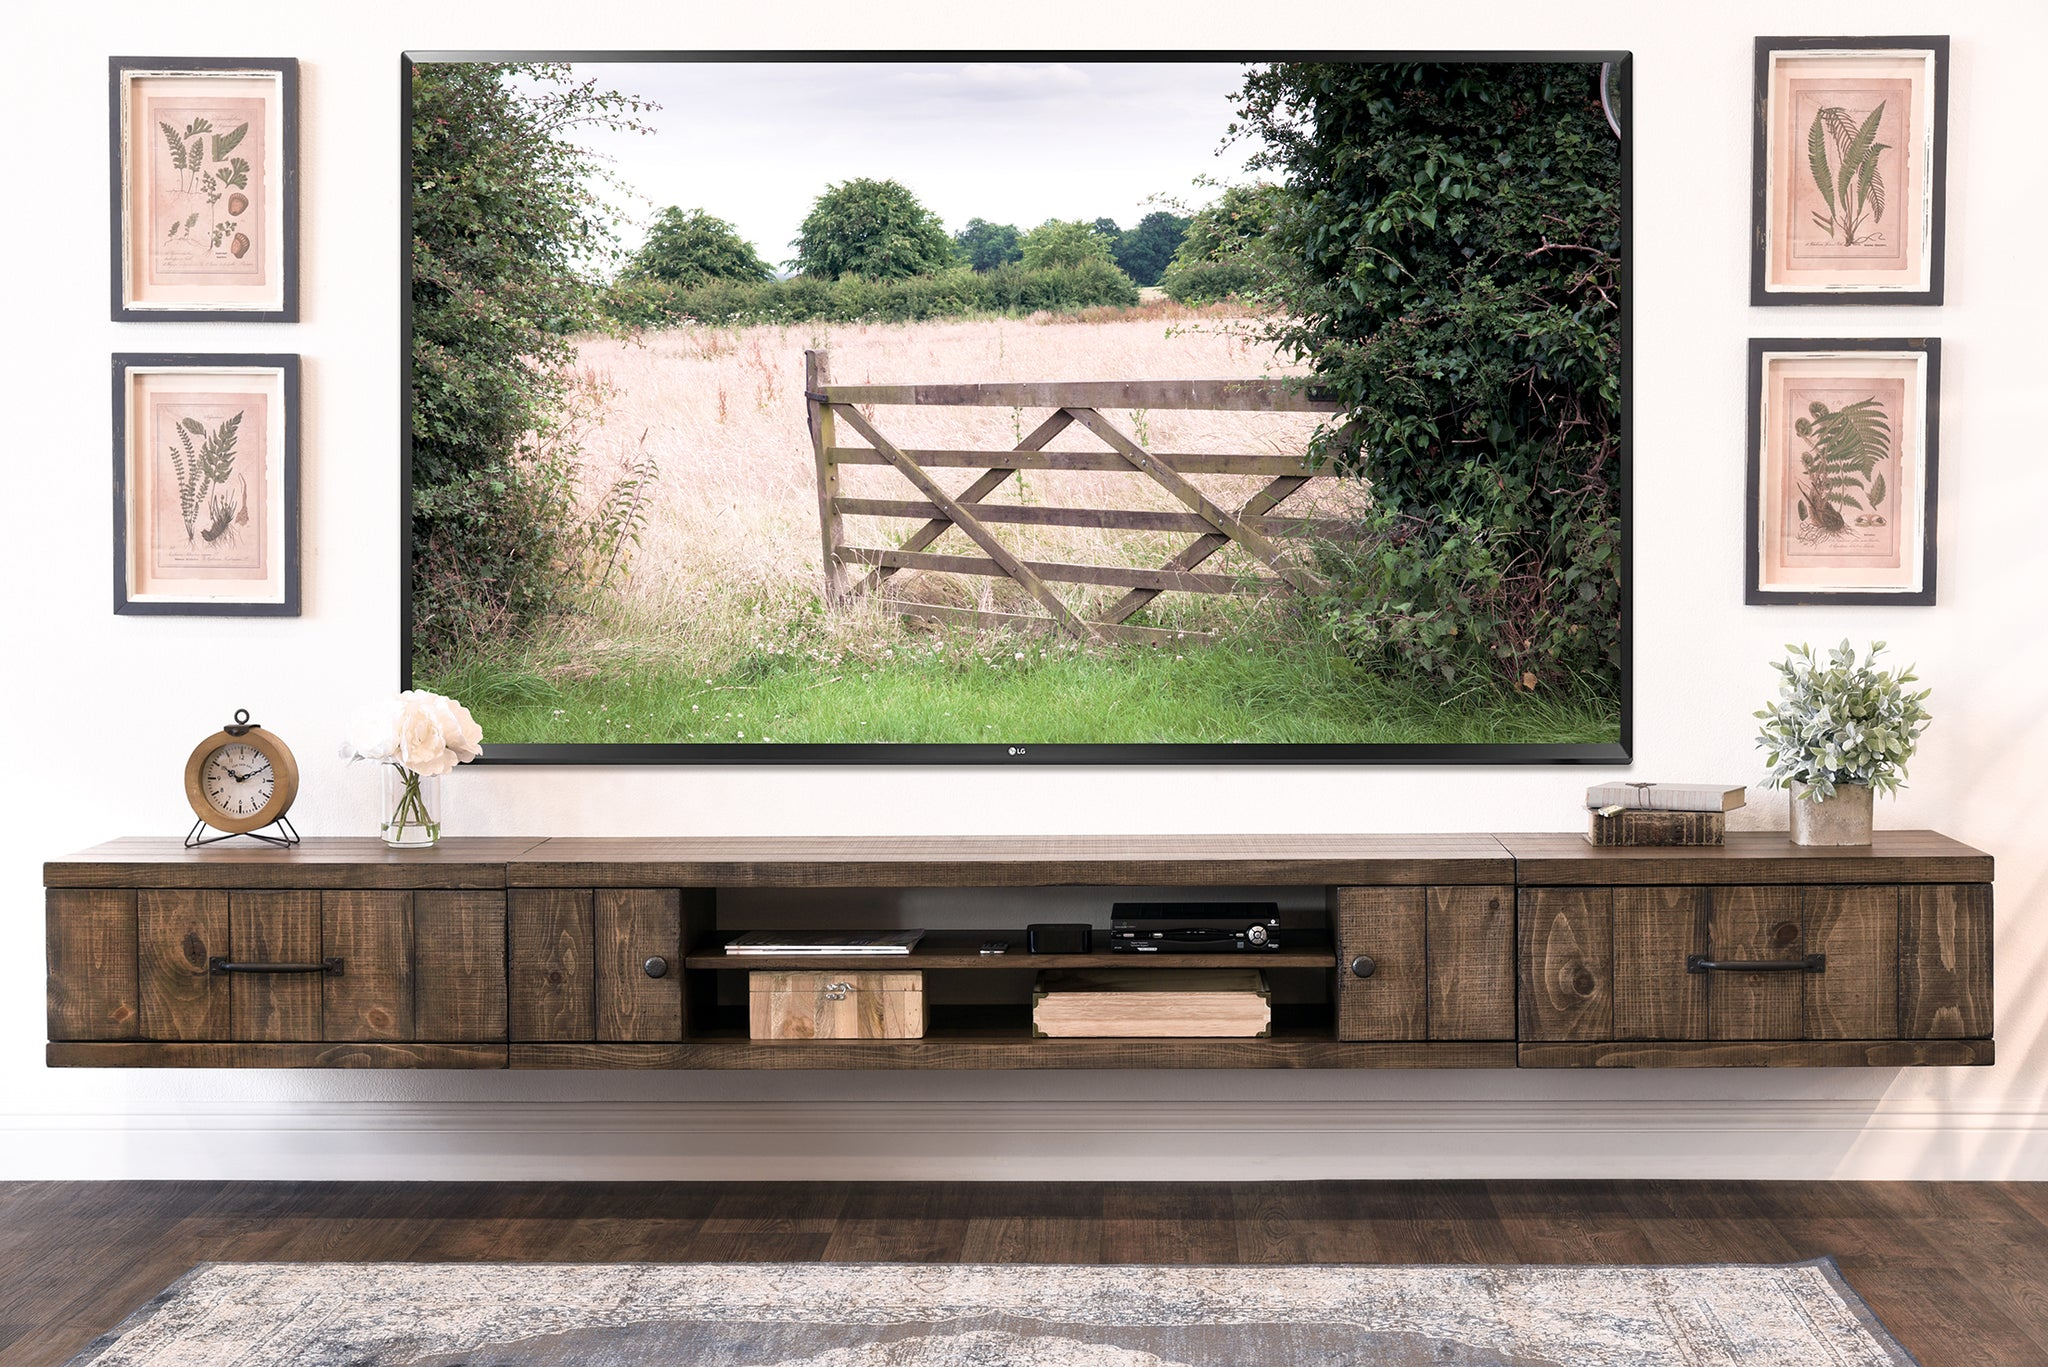 Farmhouse Rustic Wood Floating TV Stand Entertainment Center